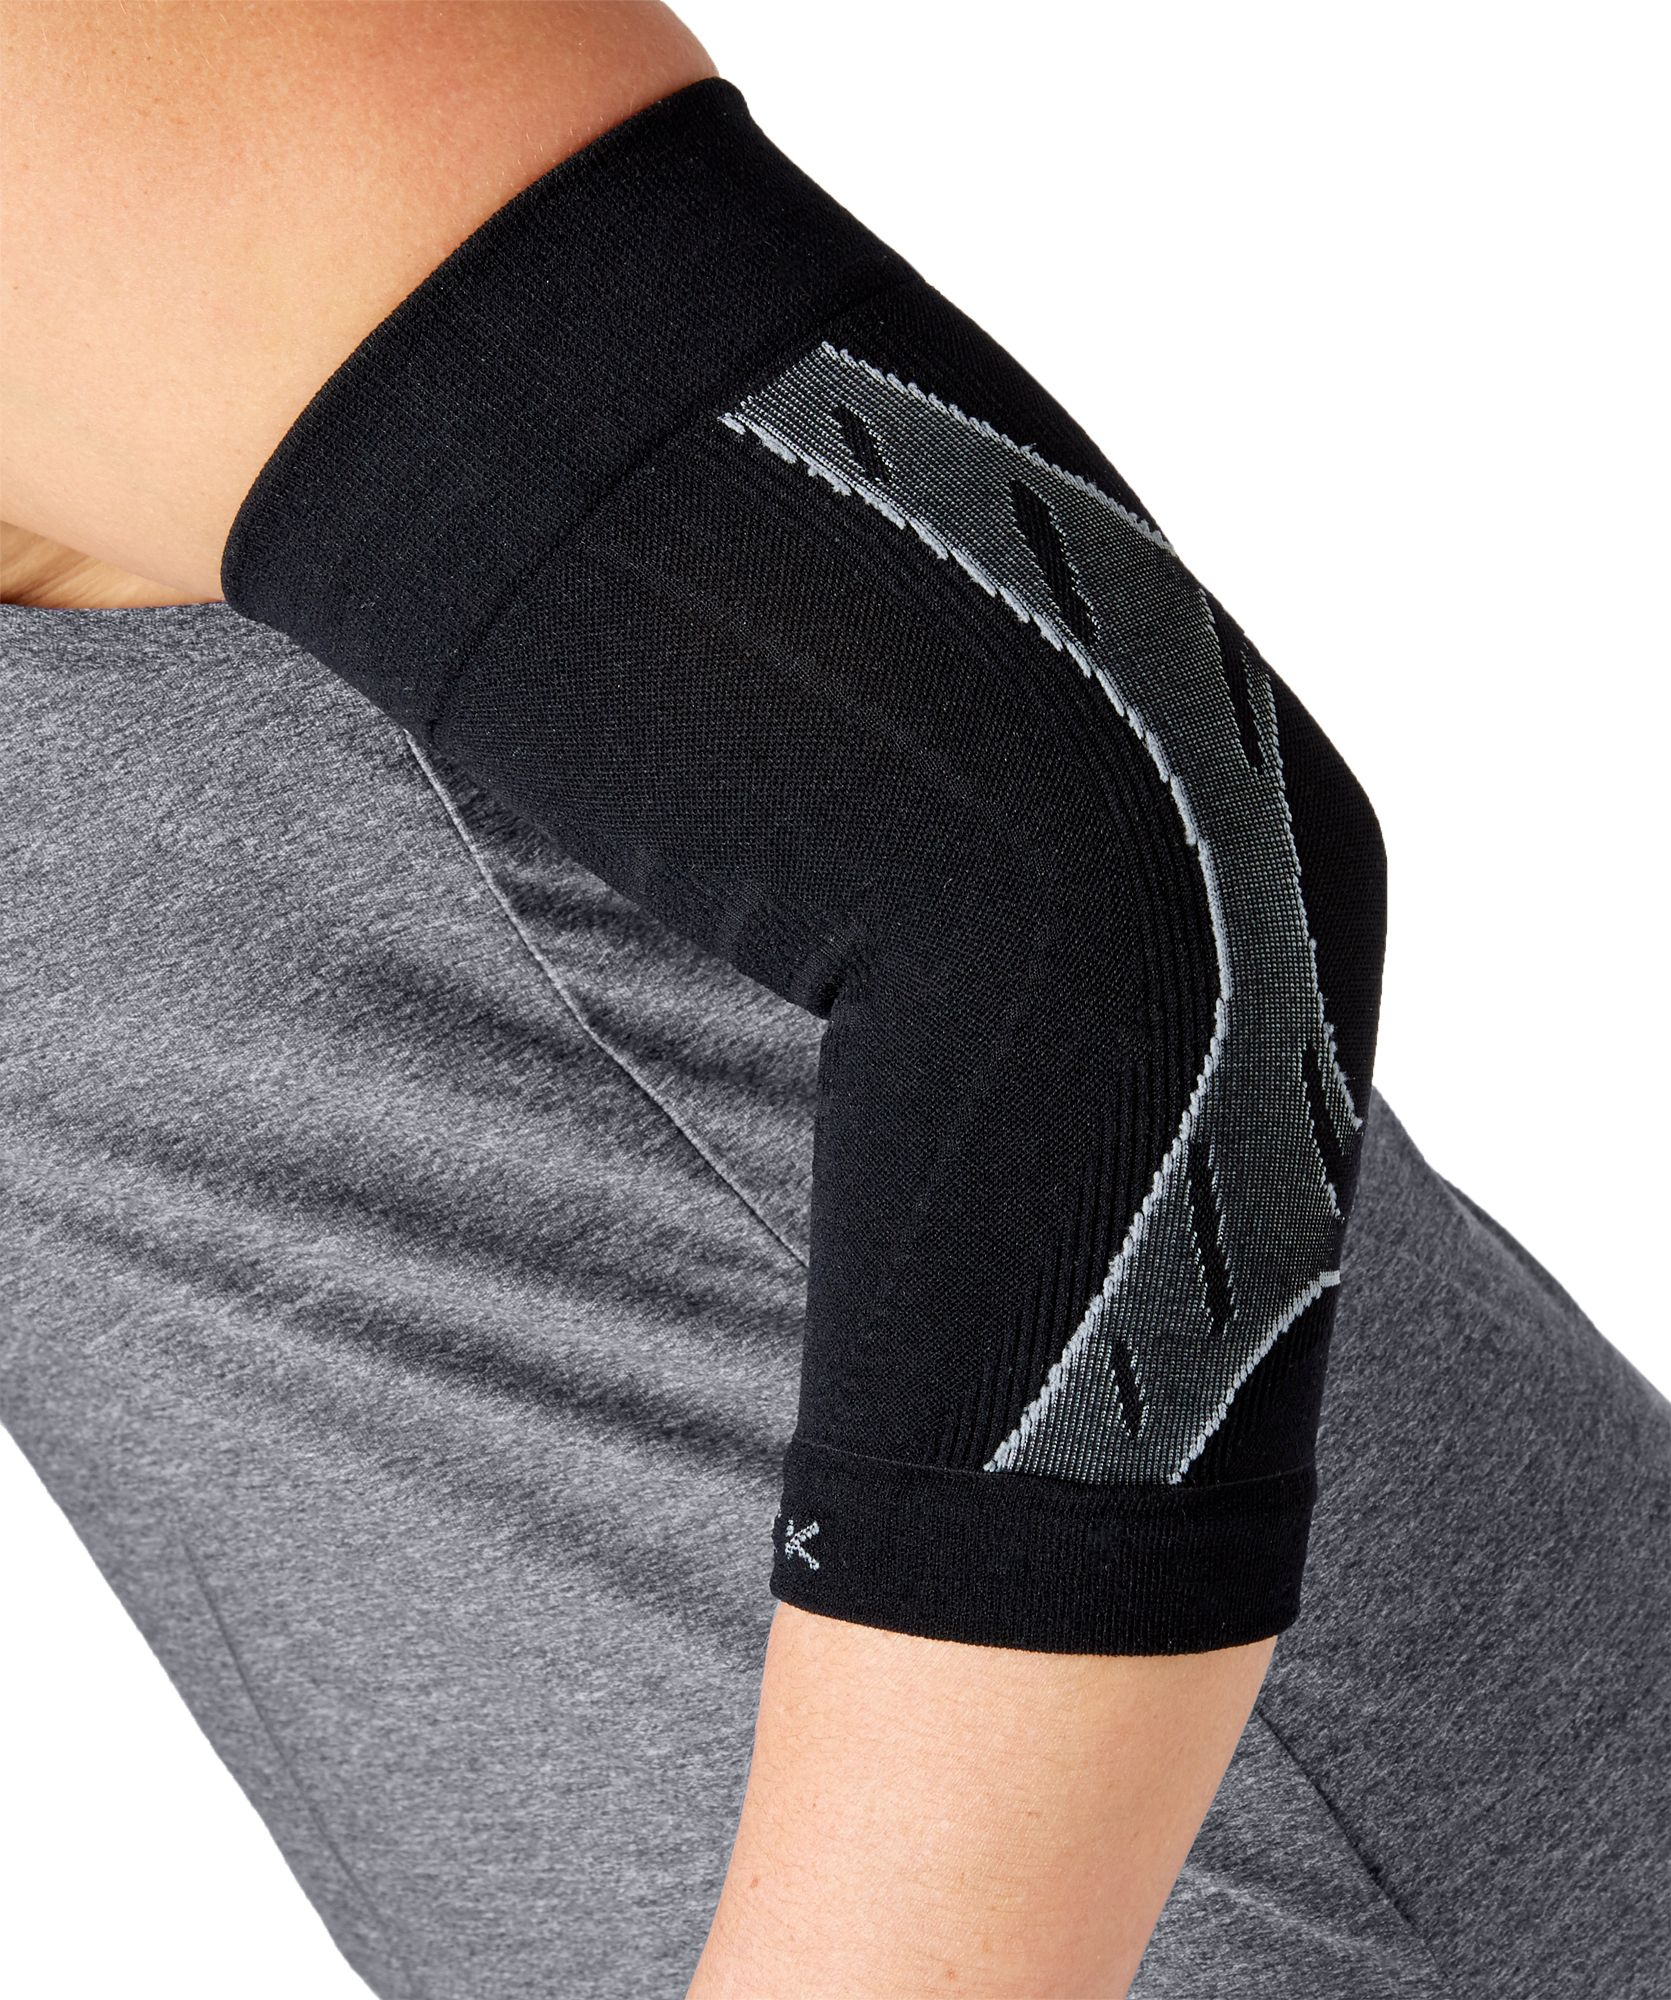 ca48df4266 P-TEX PRO Knit Compression Elbow Sleeve | DICK'S Sporting ...